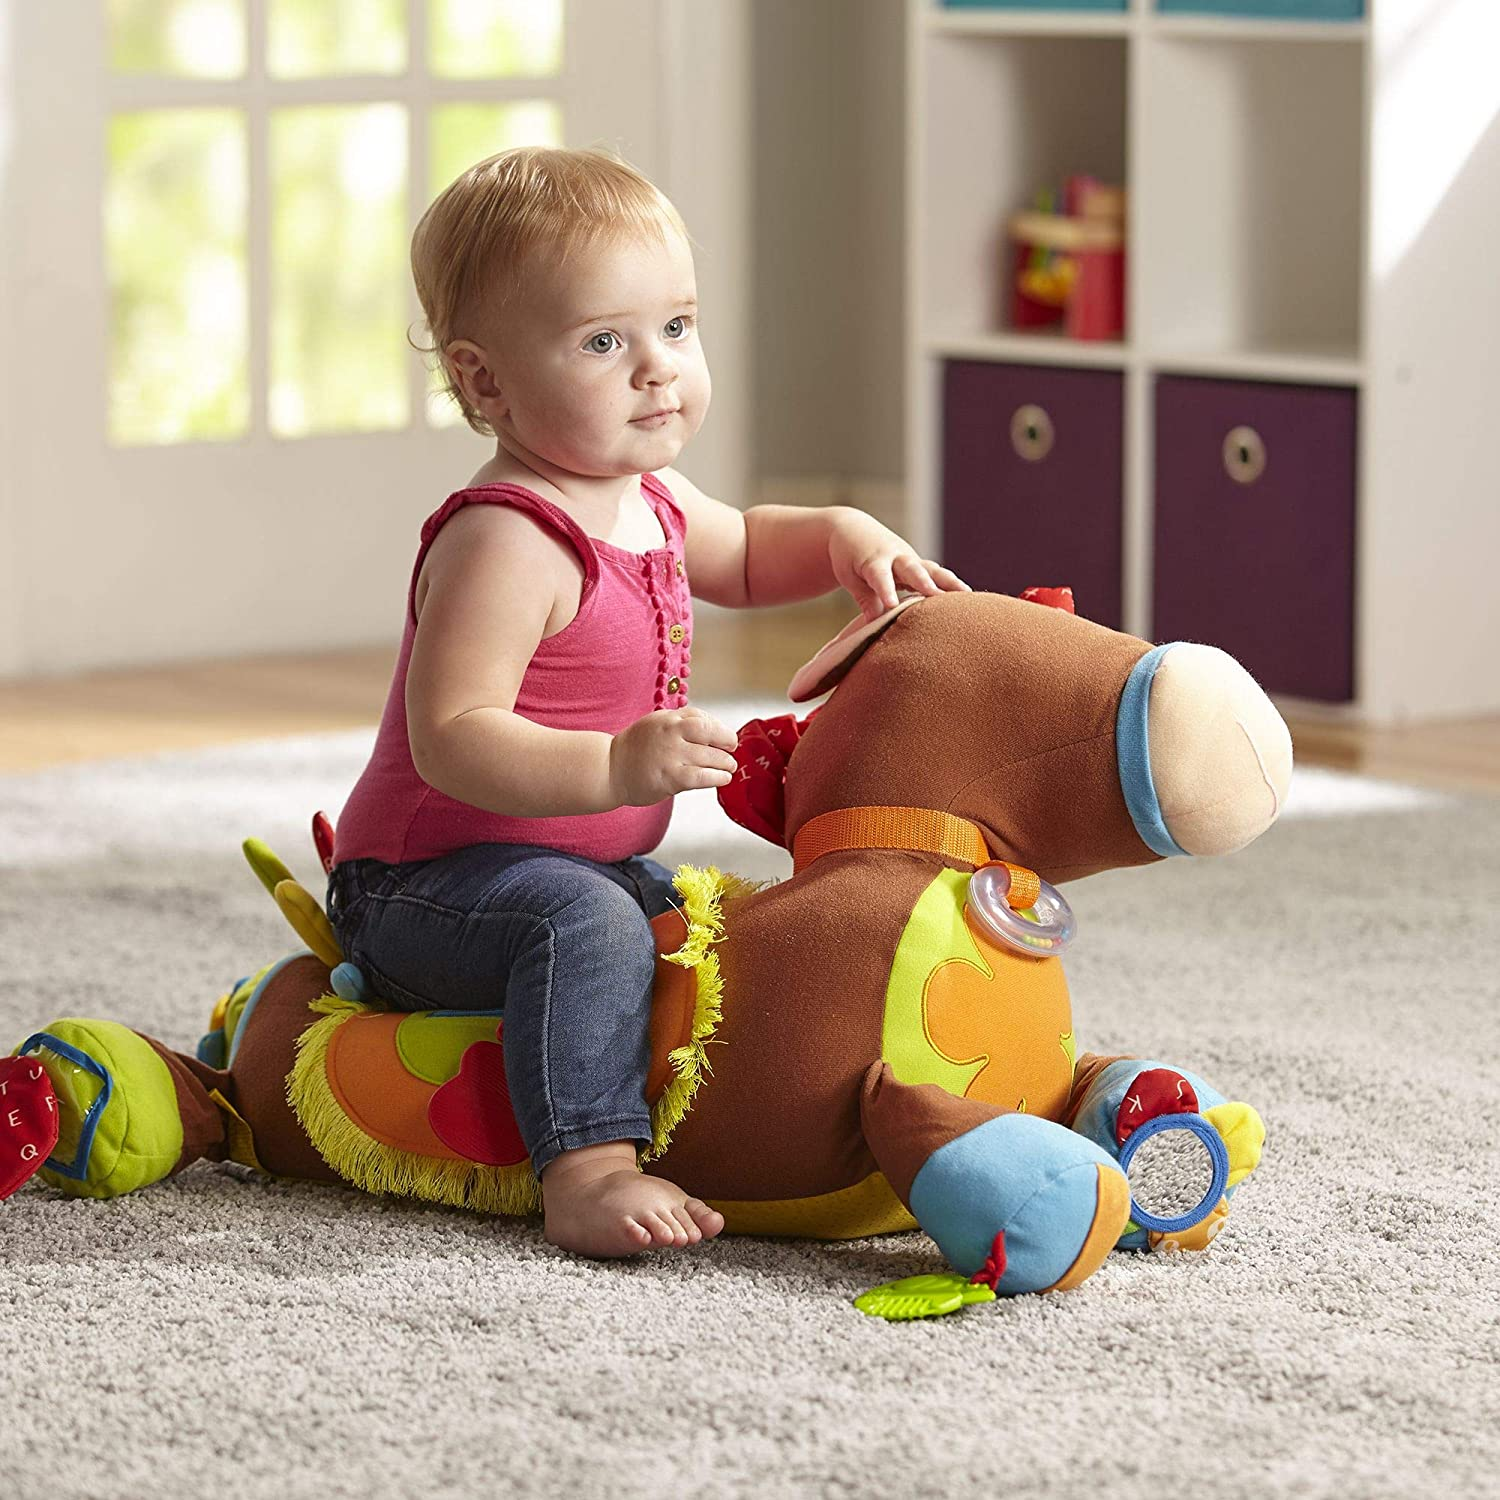 20 Best Toys and Gifts for Babies This Holiday Season, According to Parents and Parenting Experts